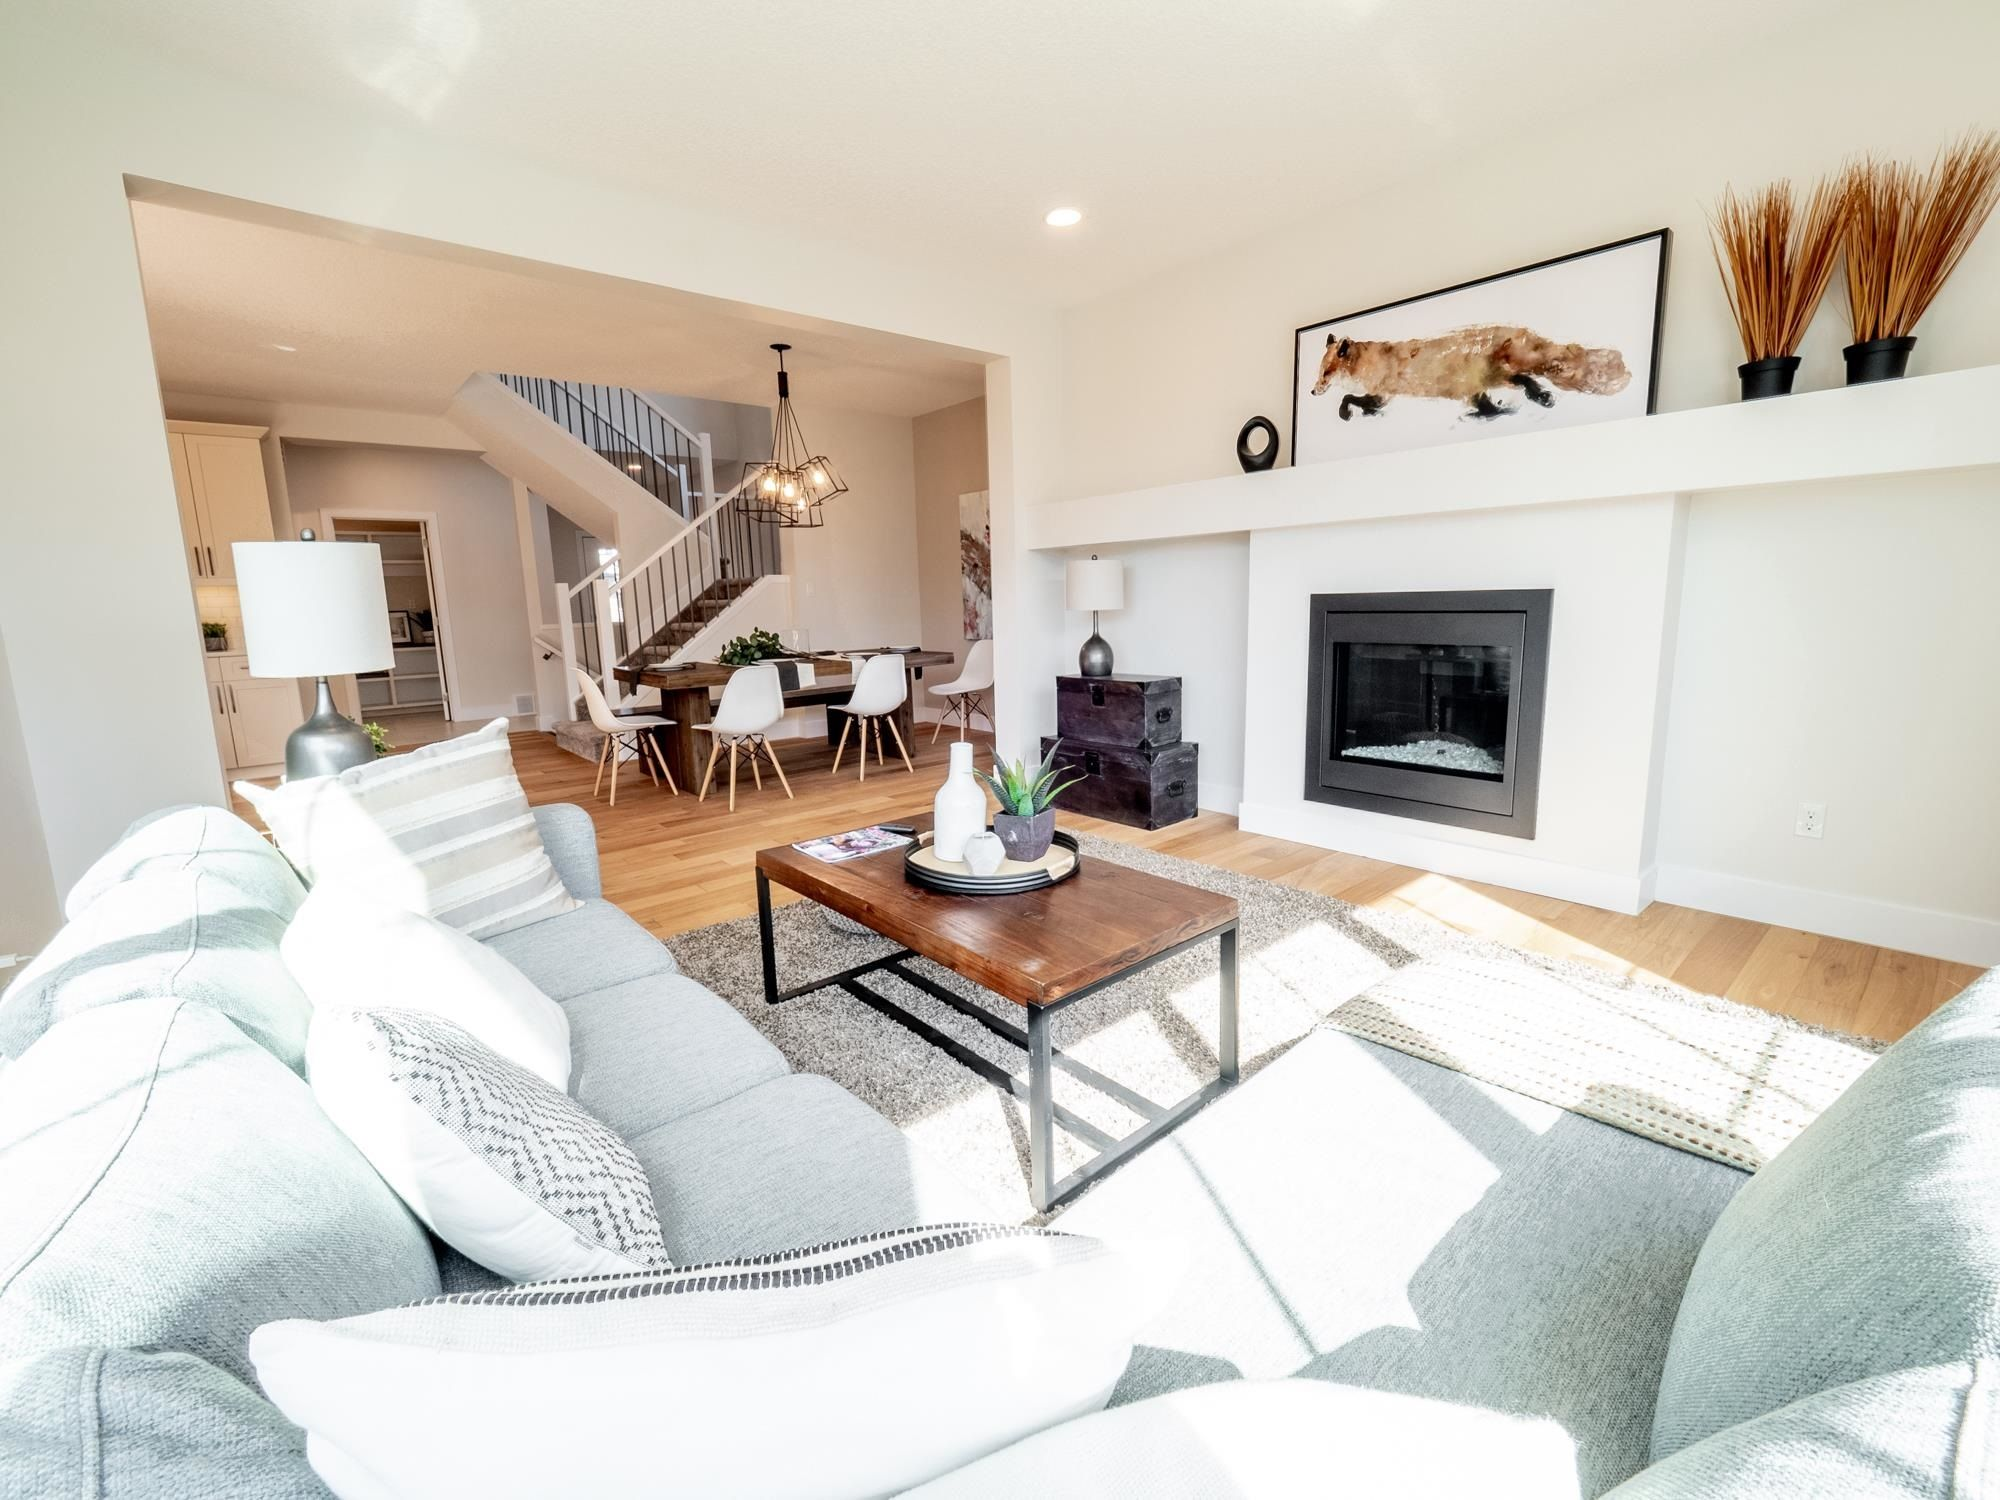 Main Photo: 6305 CRAWFORD Link in Edmonton: Zone 55 House for sale : MLS®# E4262459